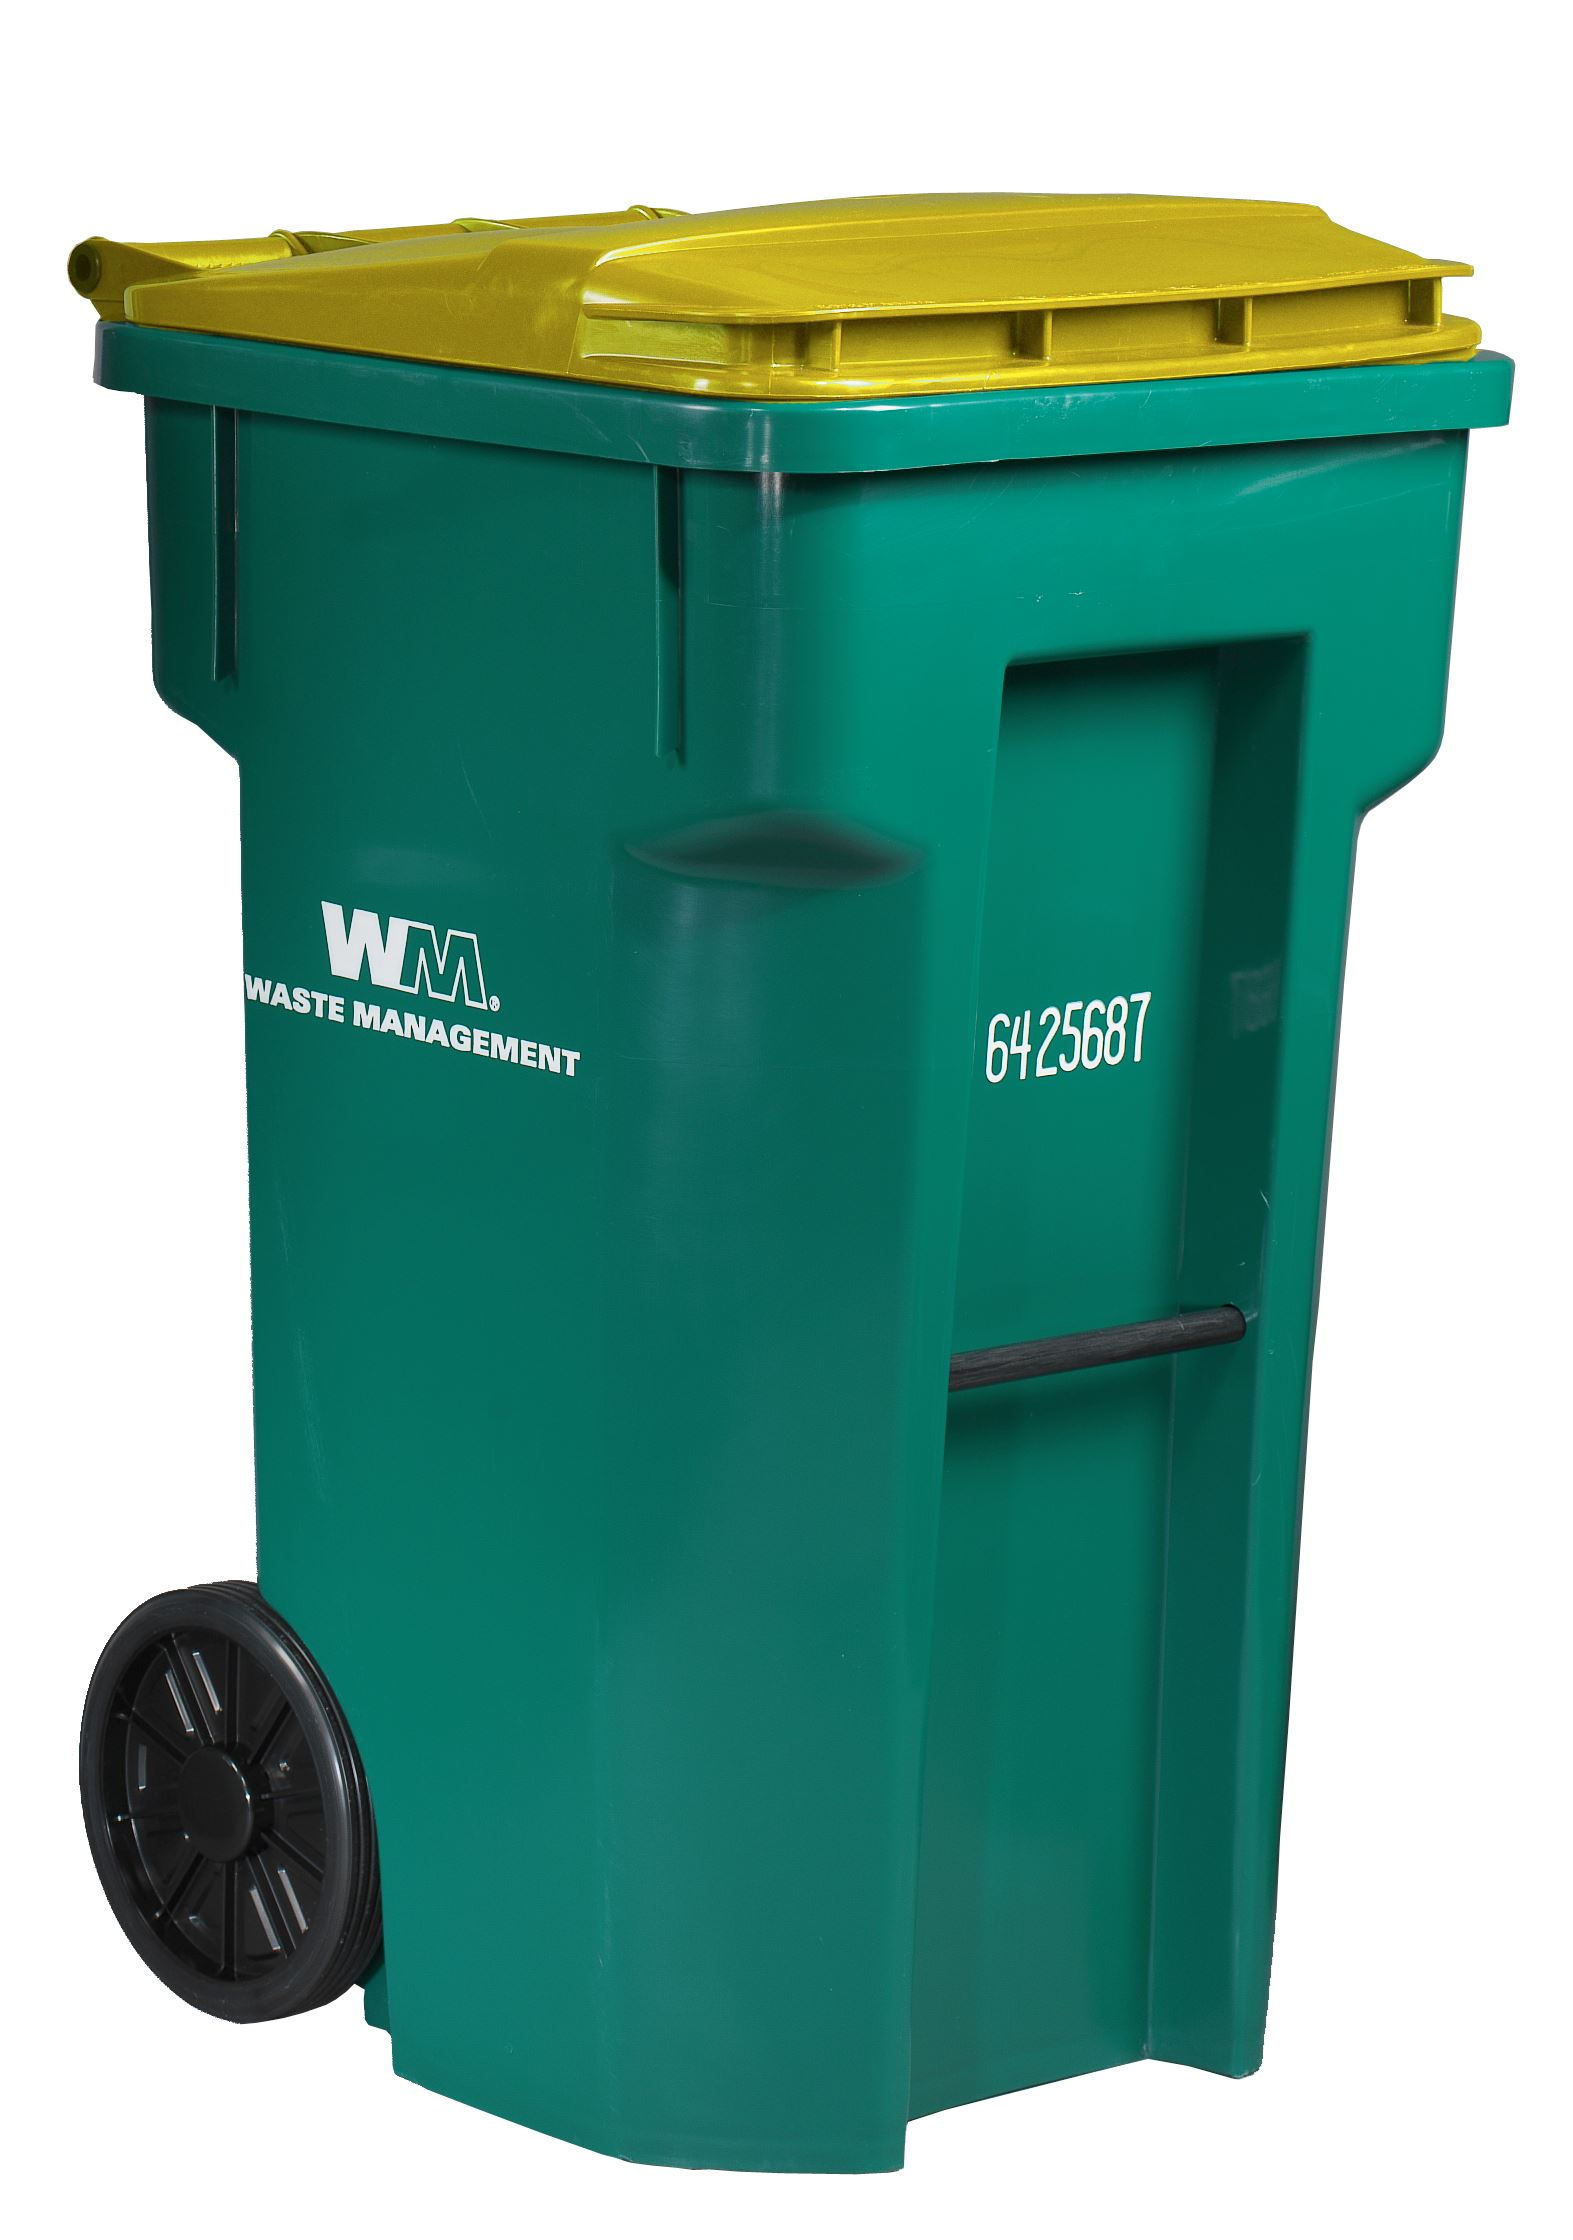 Waste Management Recycle Container (IMAGE)